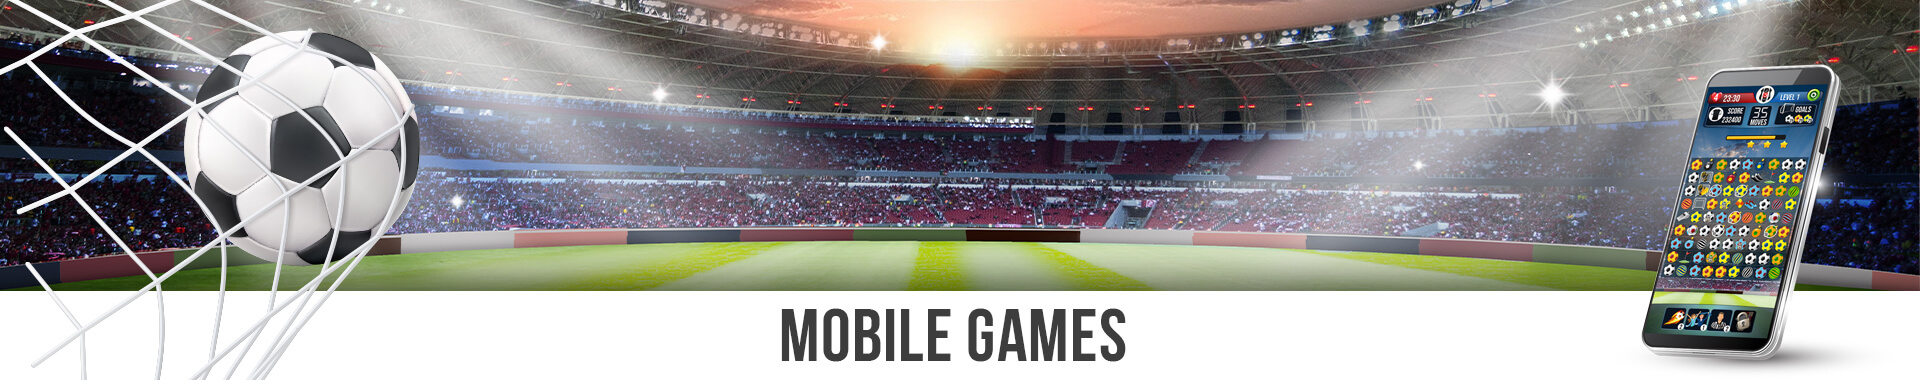 mobile games-02